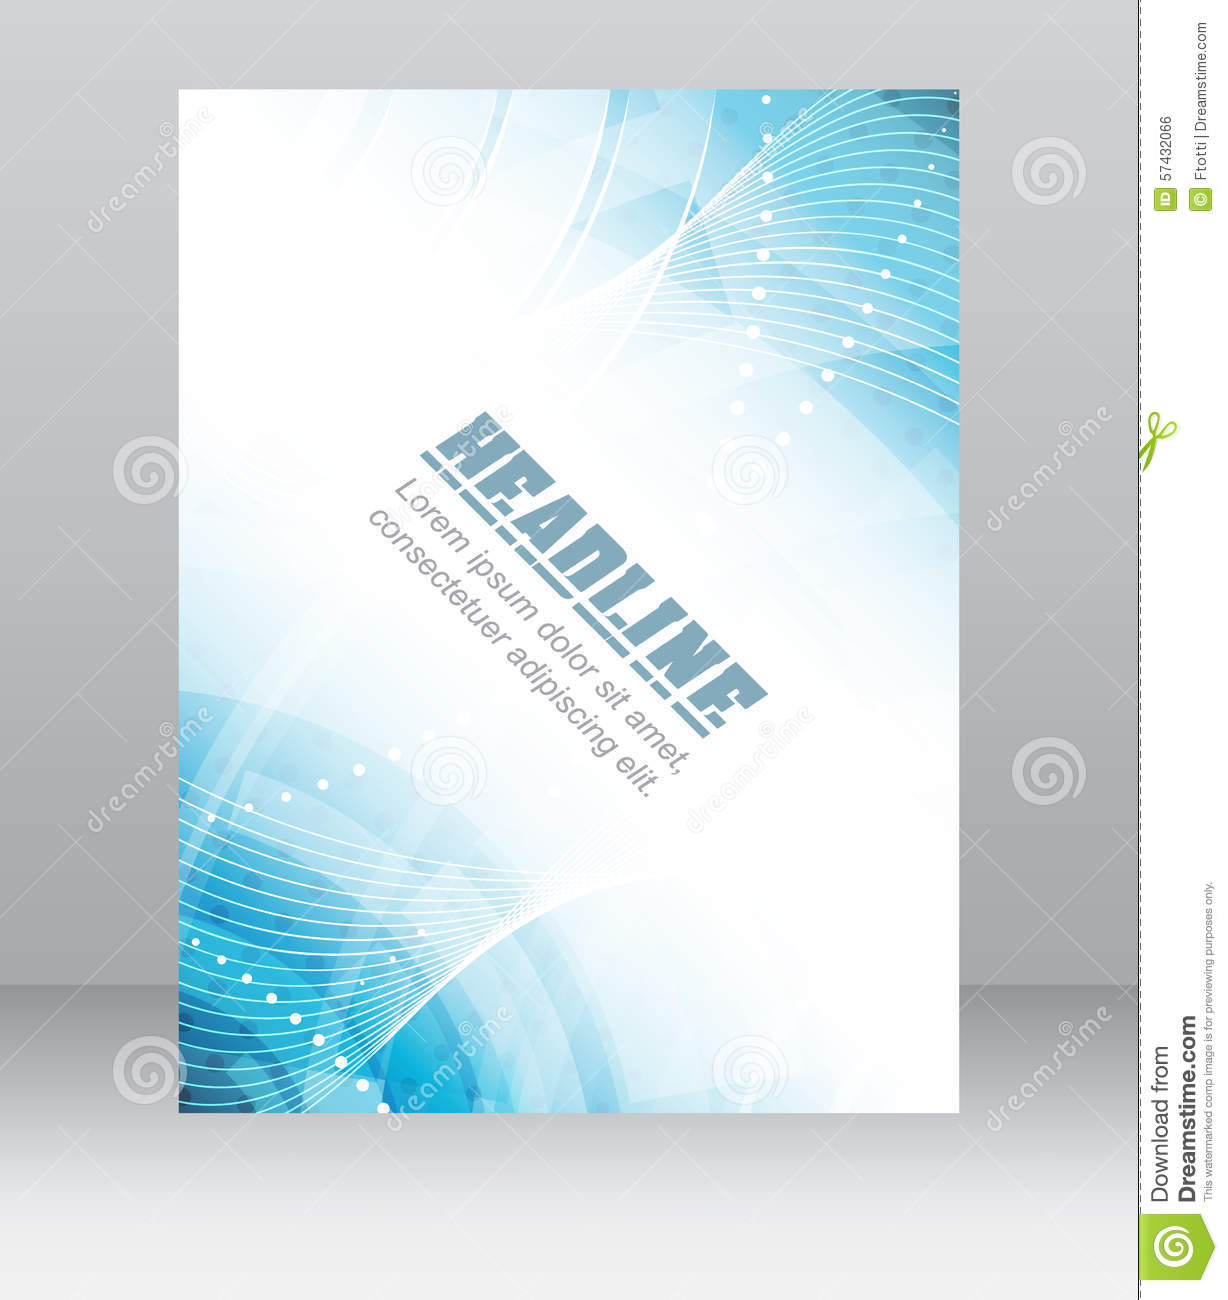 technology brochure templates - flyer or brochure template corporate banner abstract